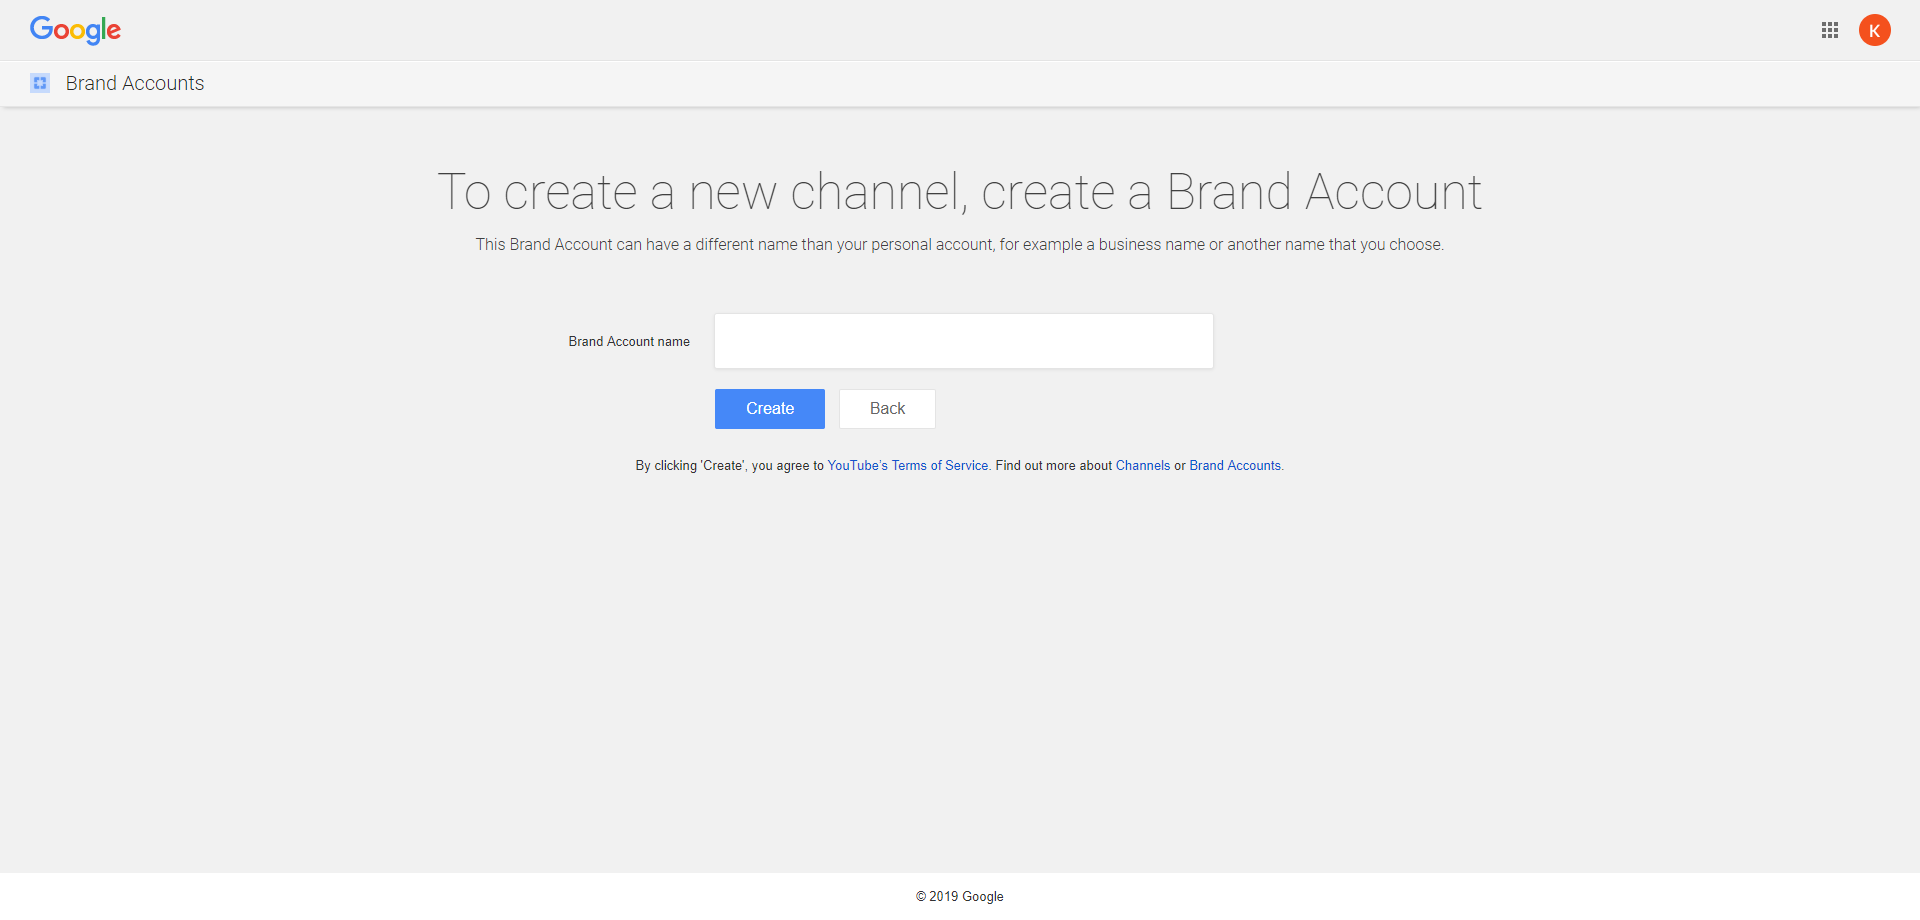 Creating a brand account